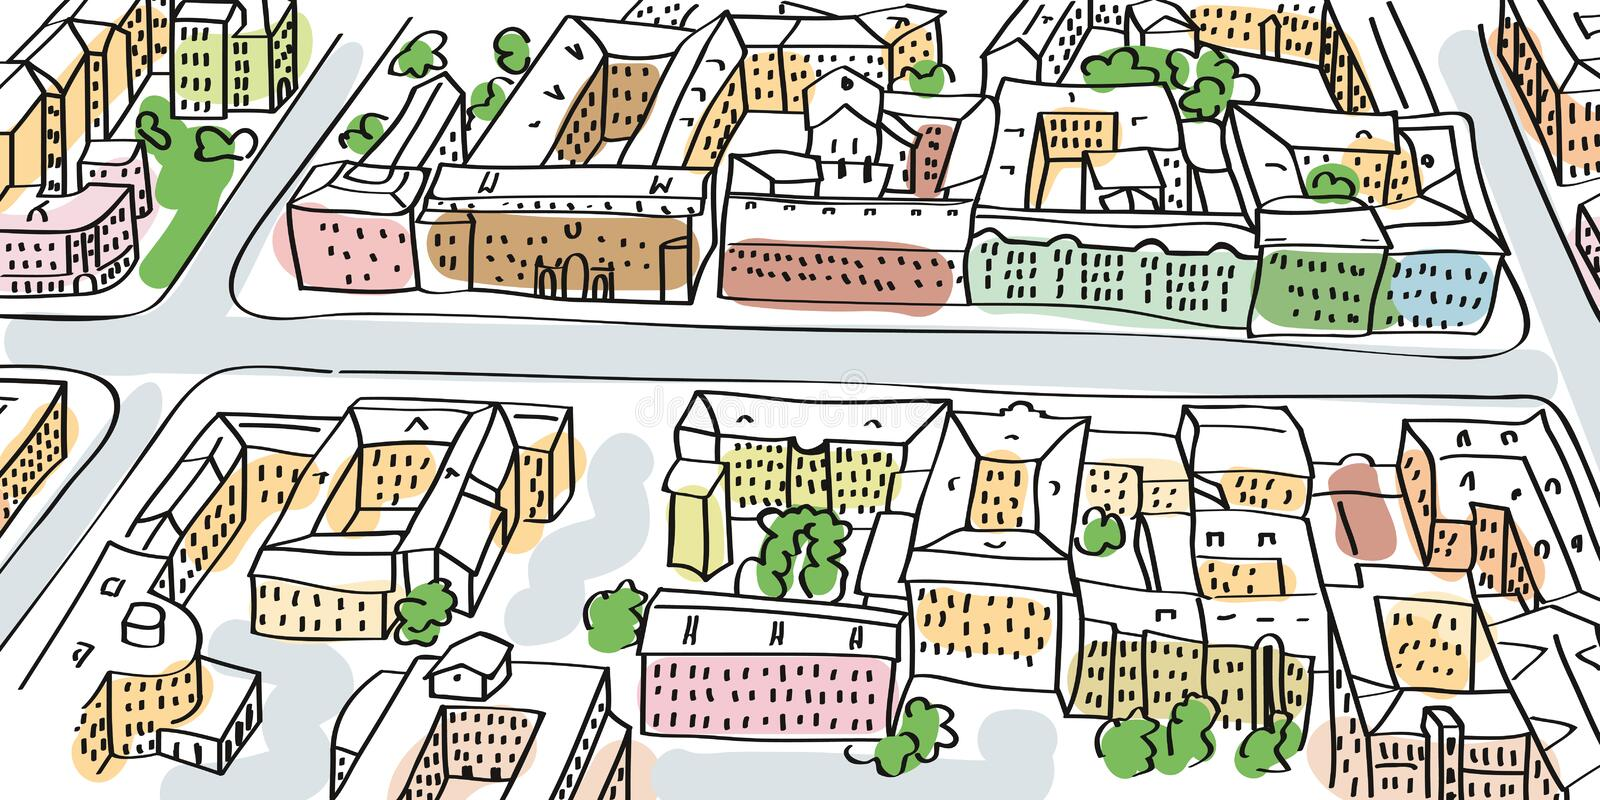 City streets perspective, top view. Illustration of city streets perspective. Buildings and crossroads, top view royalty free illustration